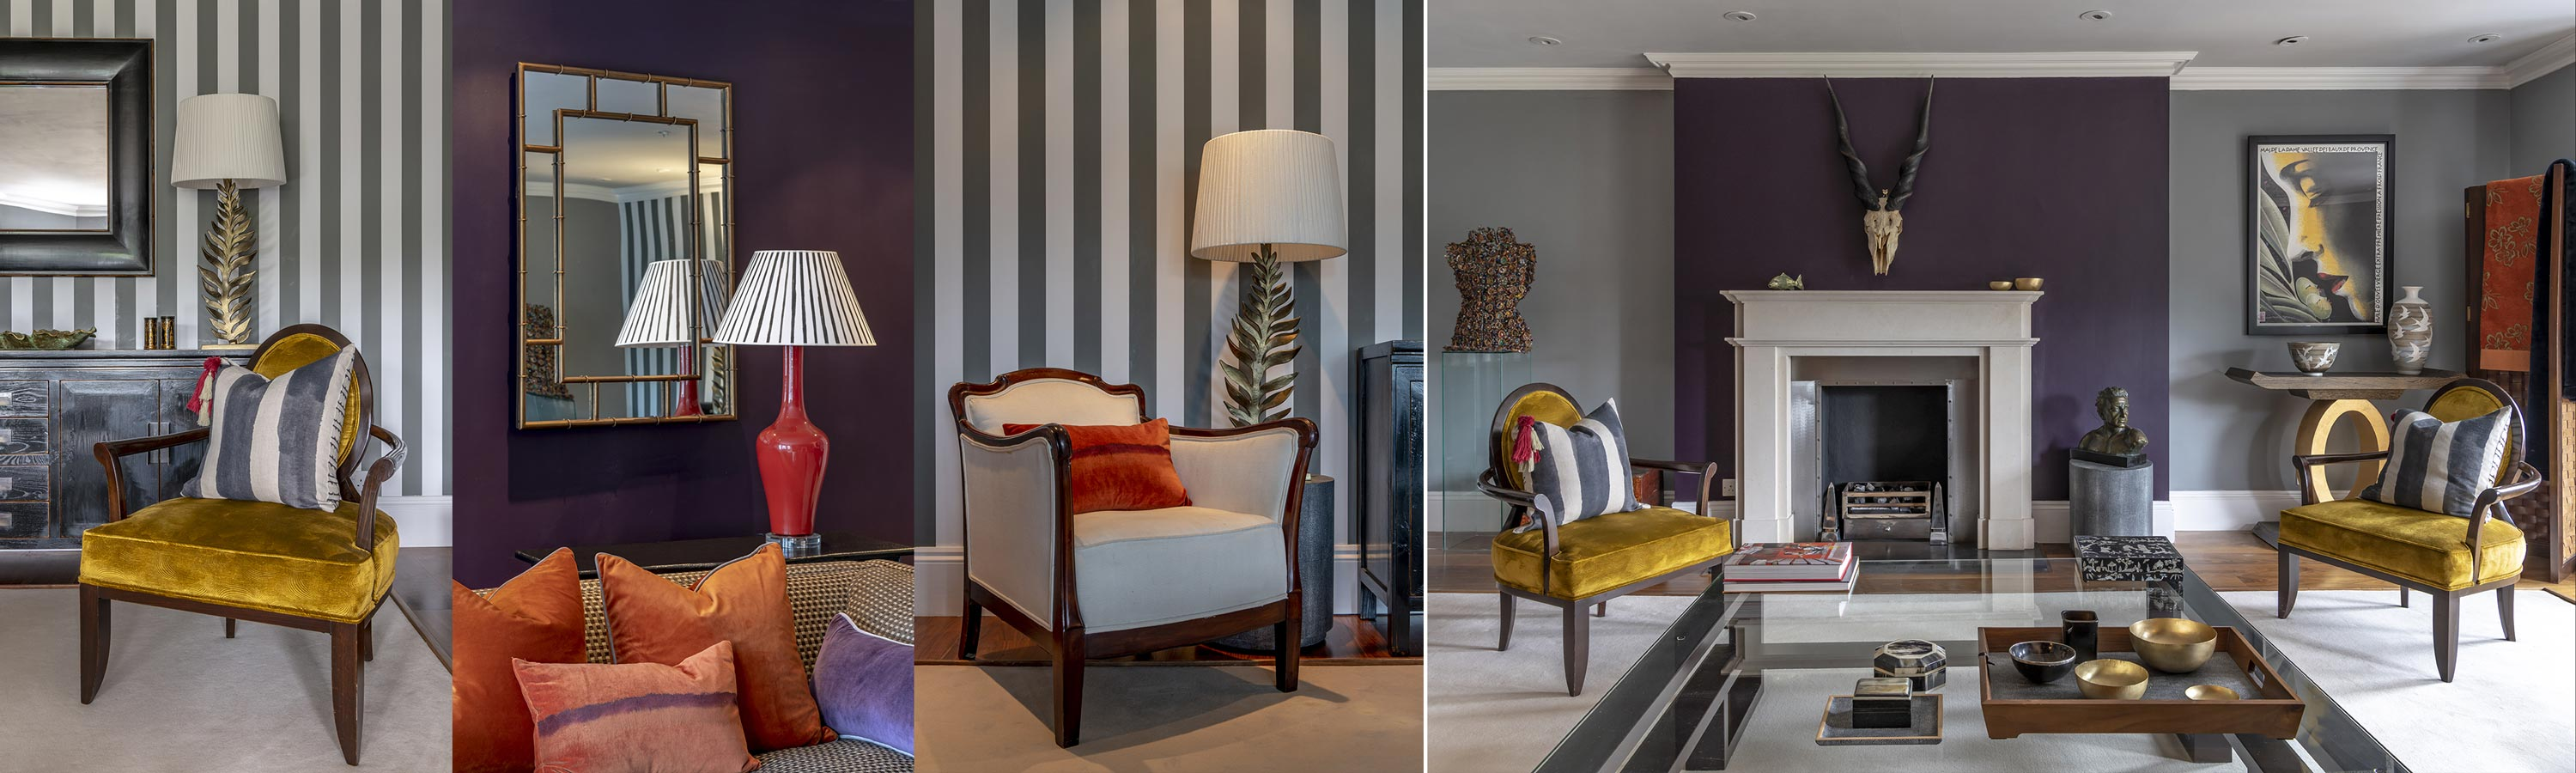 Interior Design Photos for Diana Chick, shot by Colin Walton at WaltonCreative